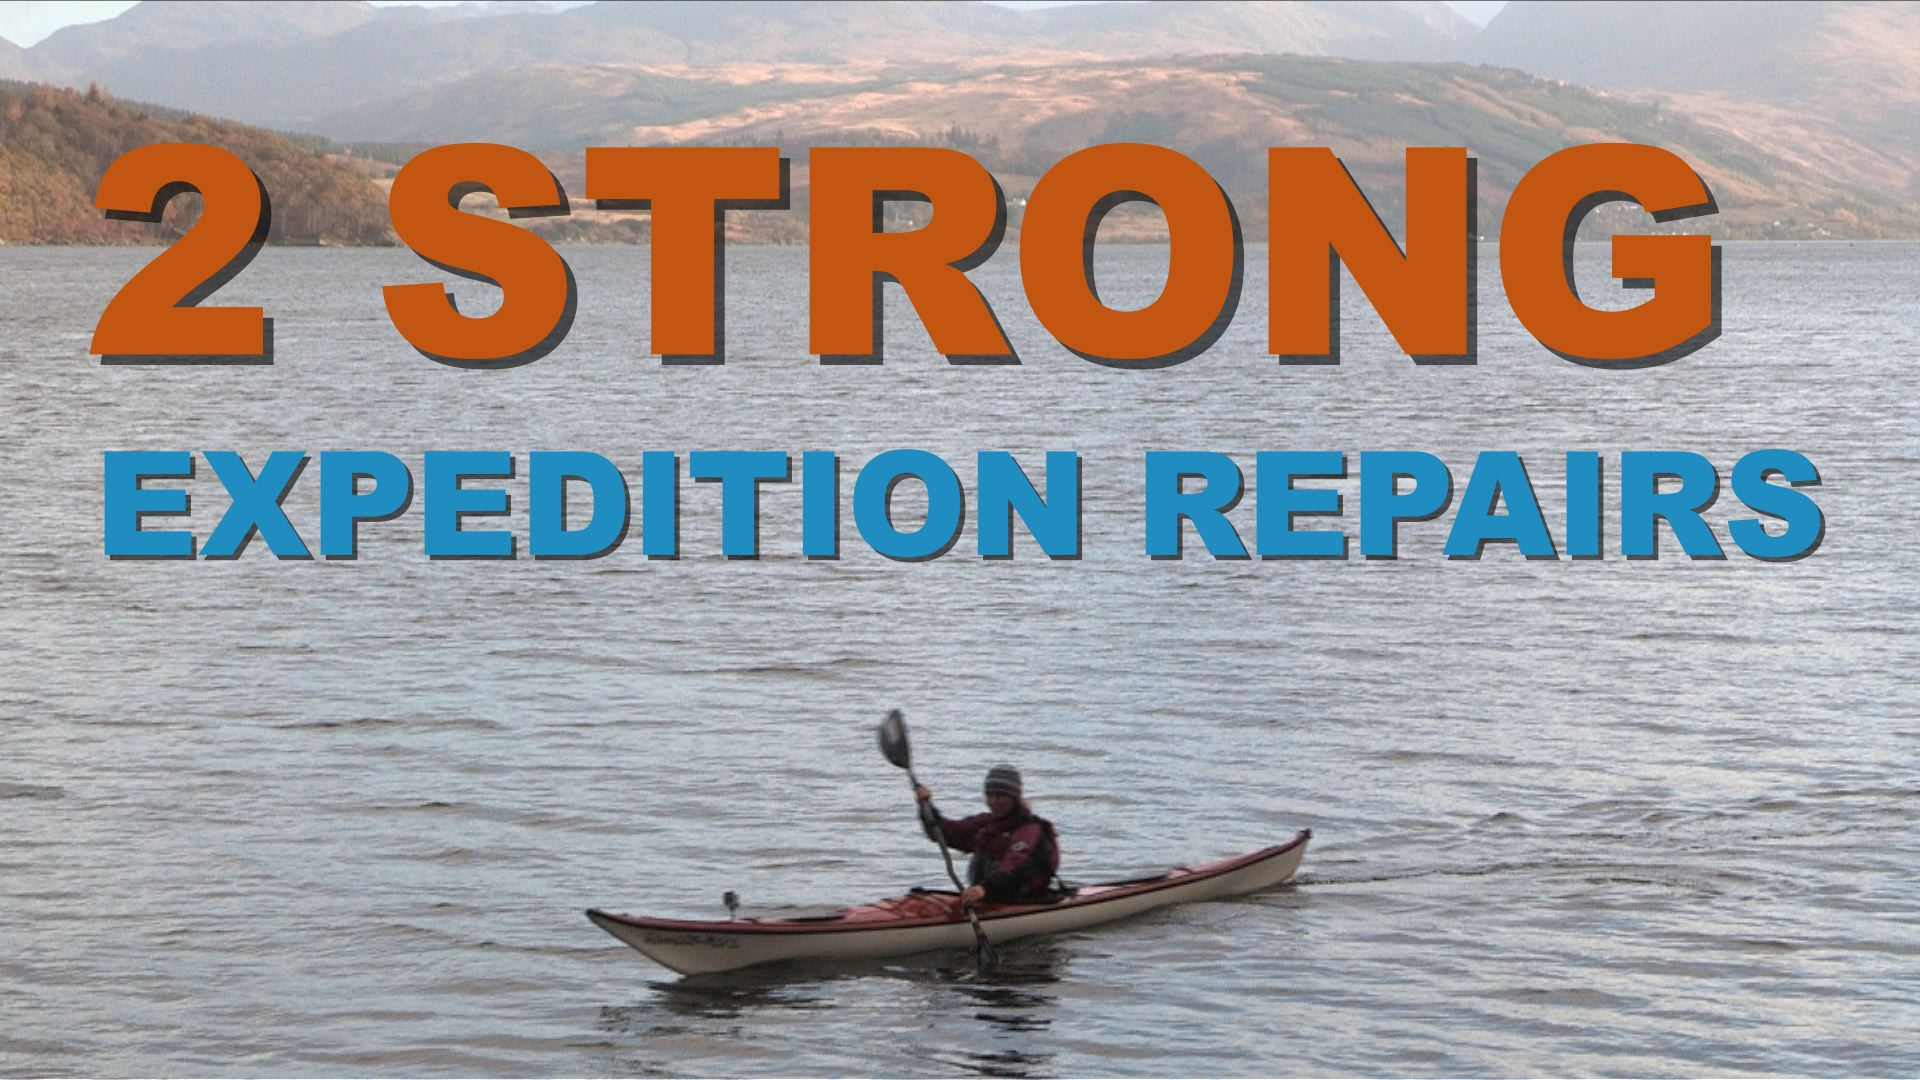 Artwork for 2 Strong Expedition Repairs